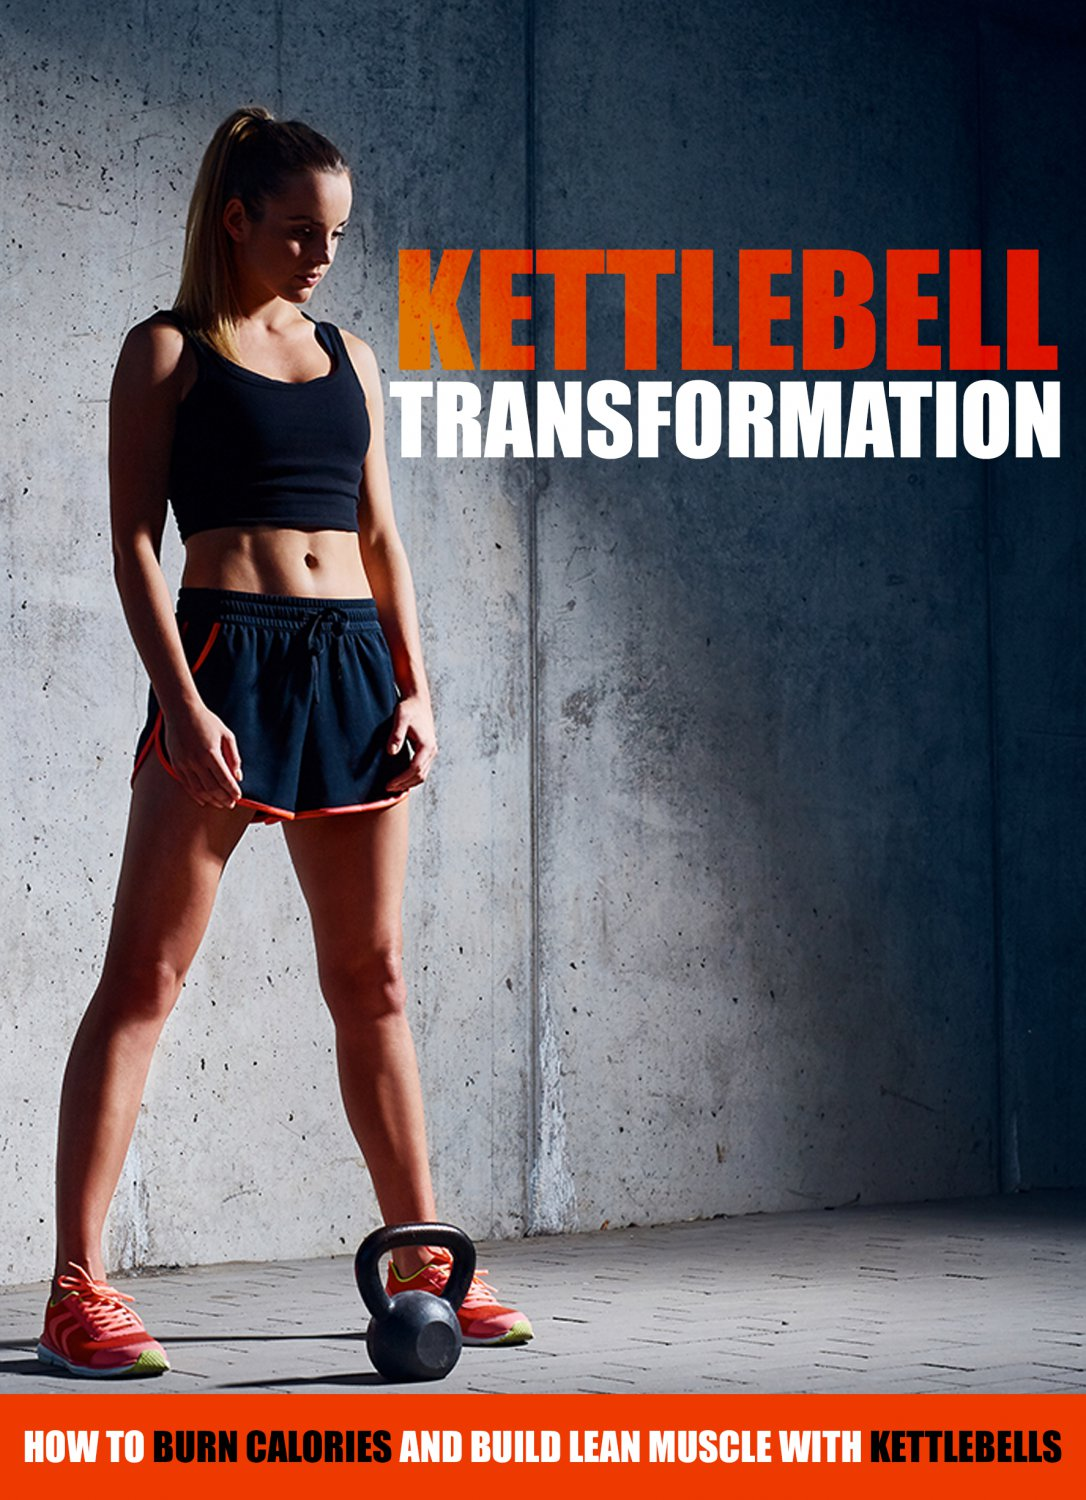 Kettlebell Transformational Exercise Videos